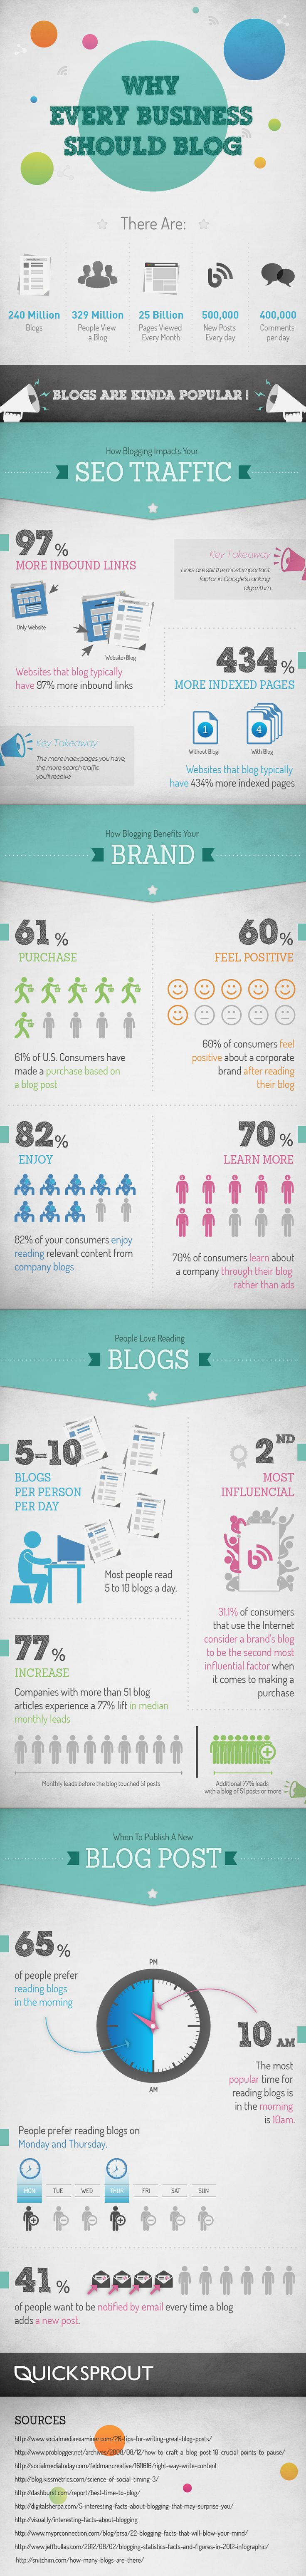 For all these reasons...Why Every Business Should Blog #Business #Blog | #infographics repinned by @Piktochart